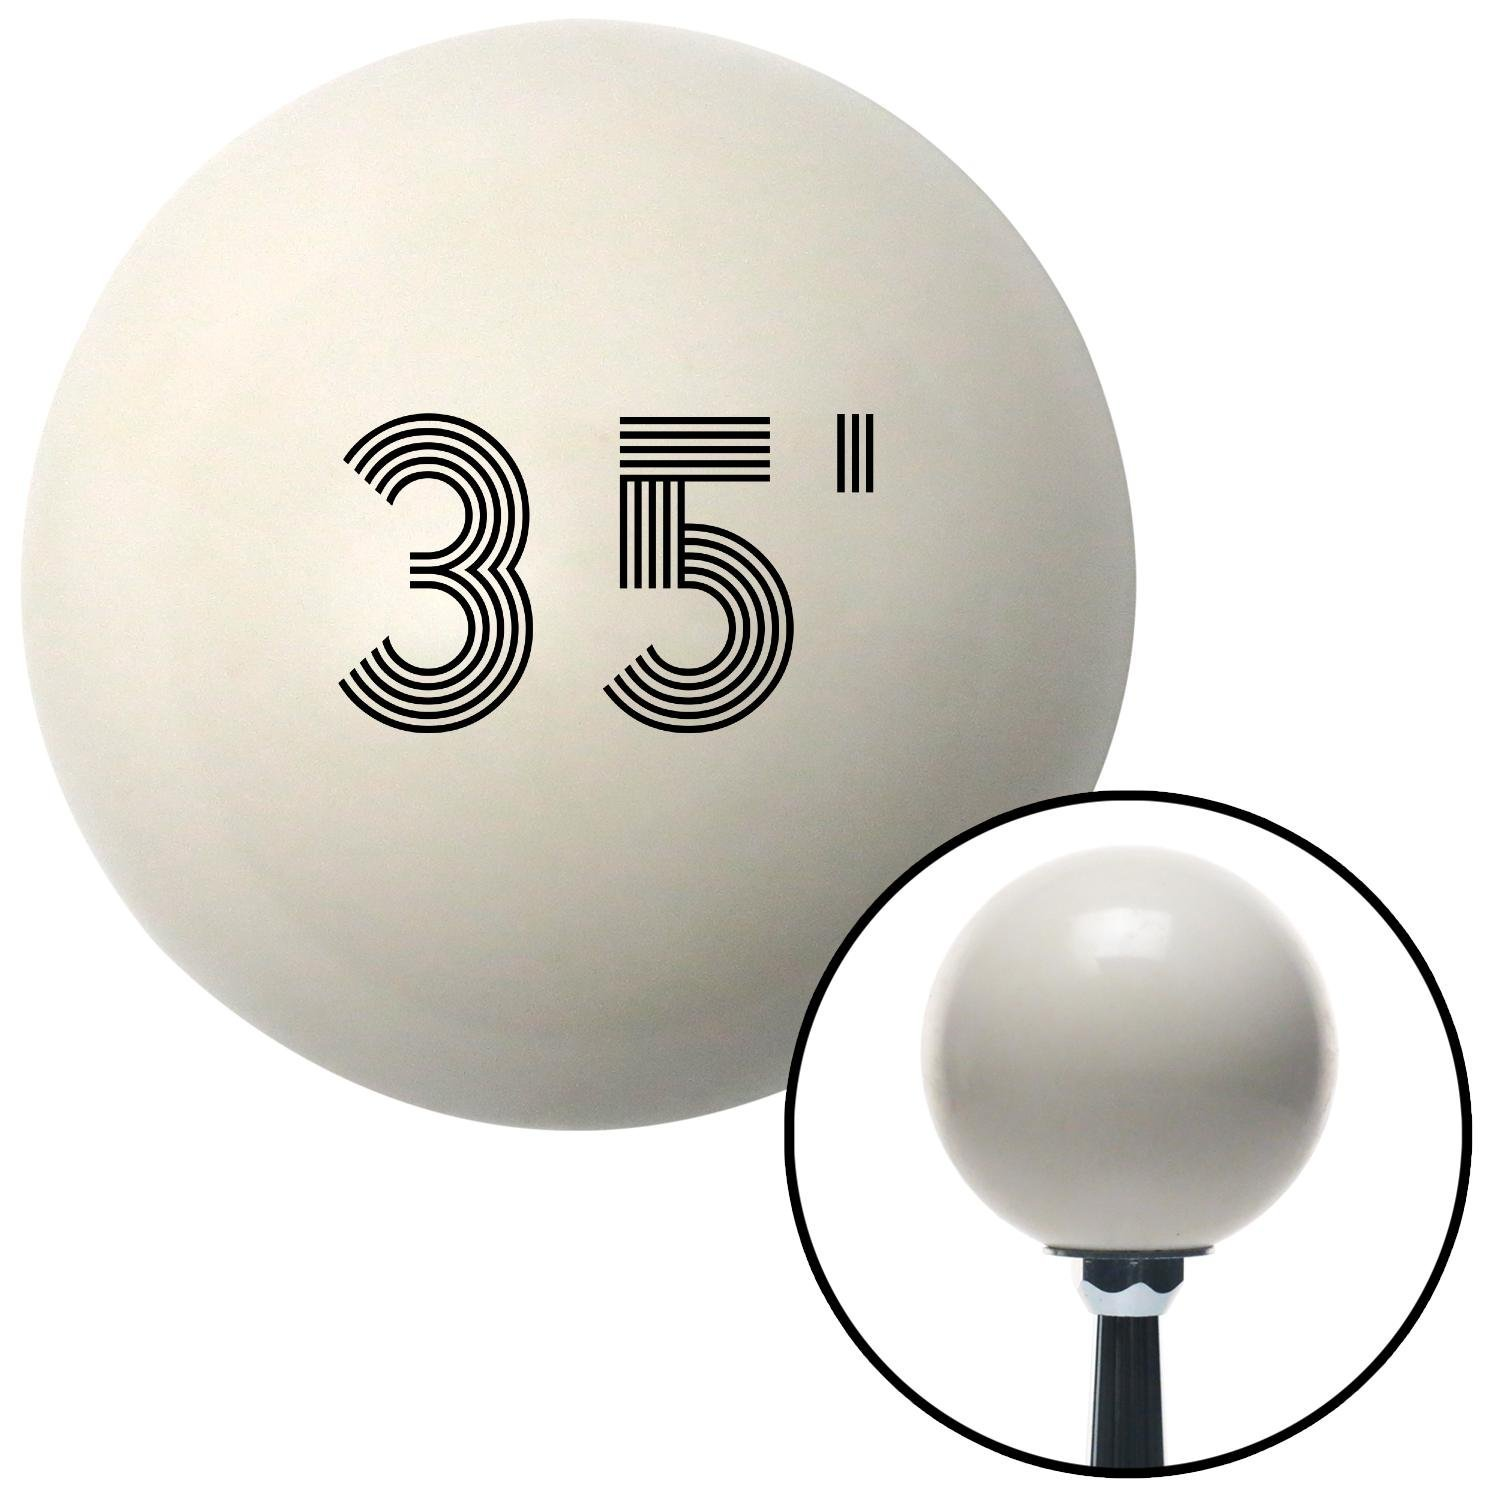 Black 35 Year Retro Series American Shifter 142309 Ivory Shift Knob with M16 x 1.5 Insert